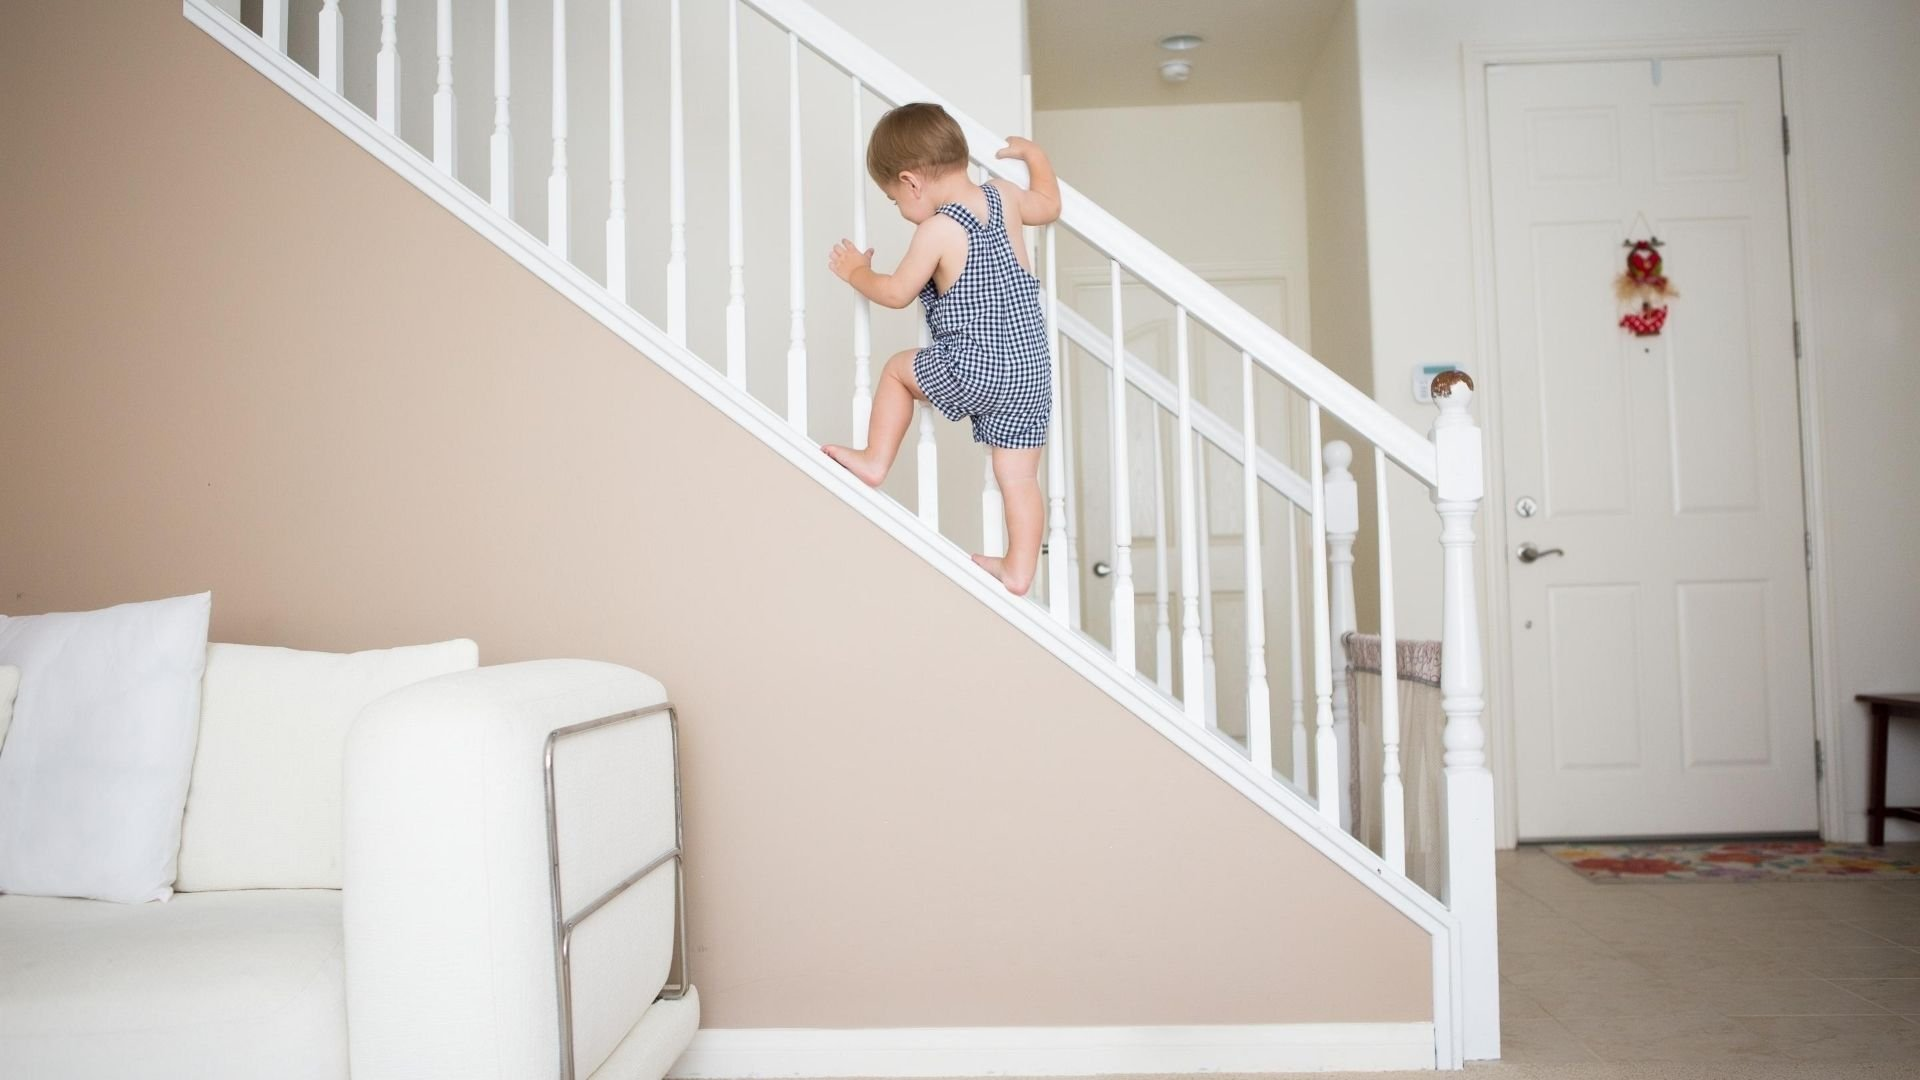 How to Discipline a Toddler guide